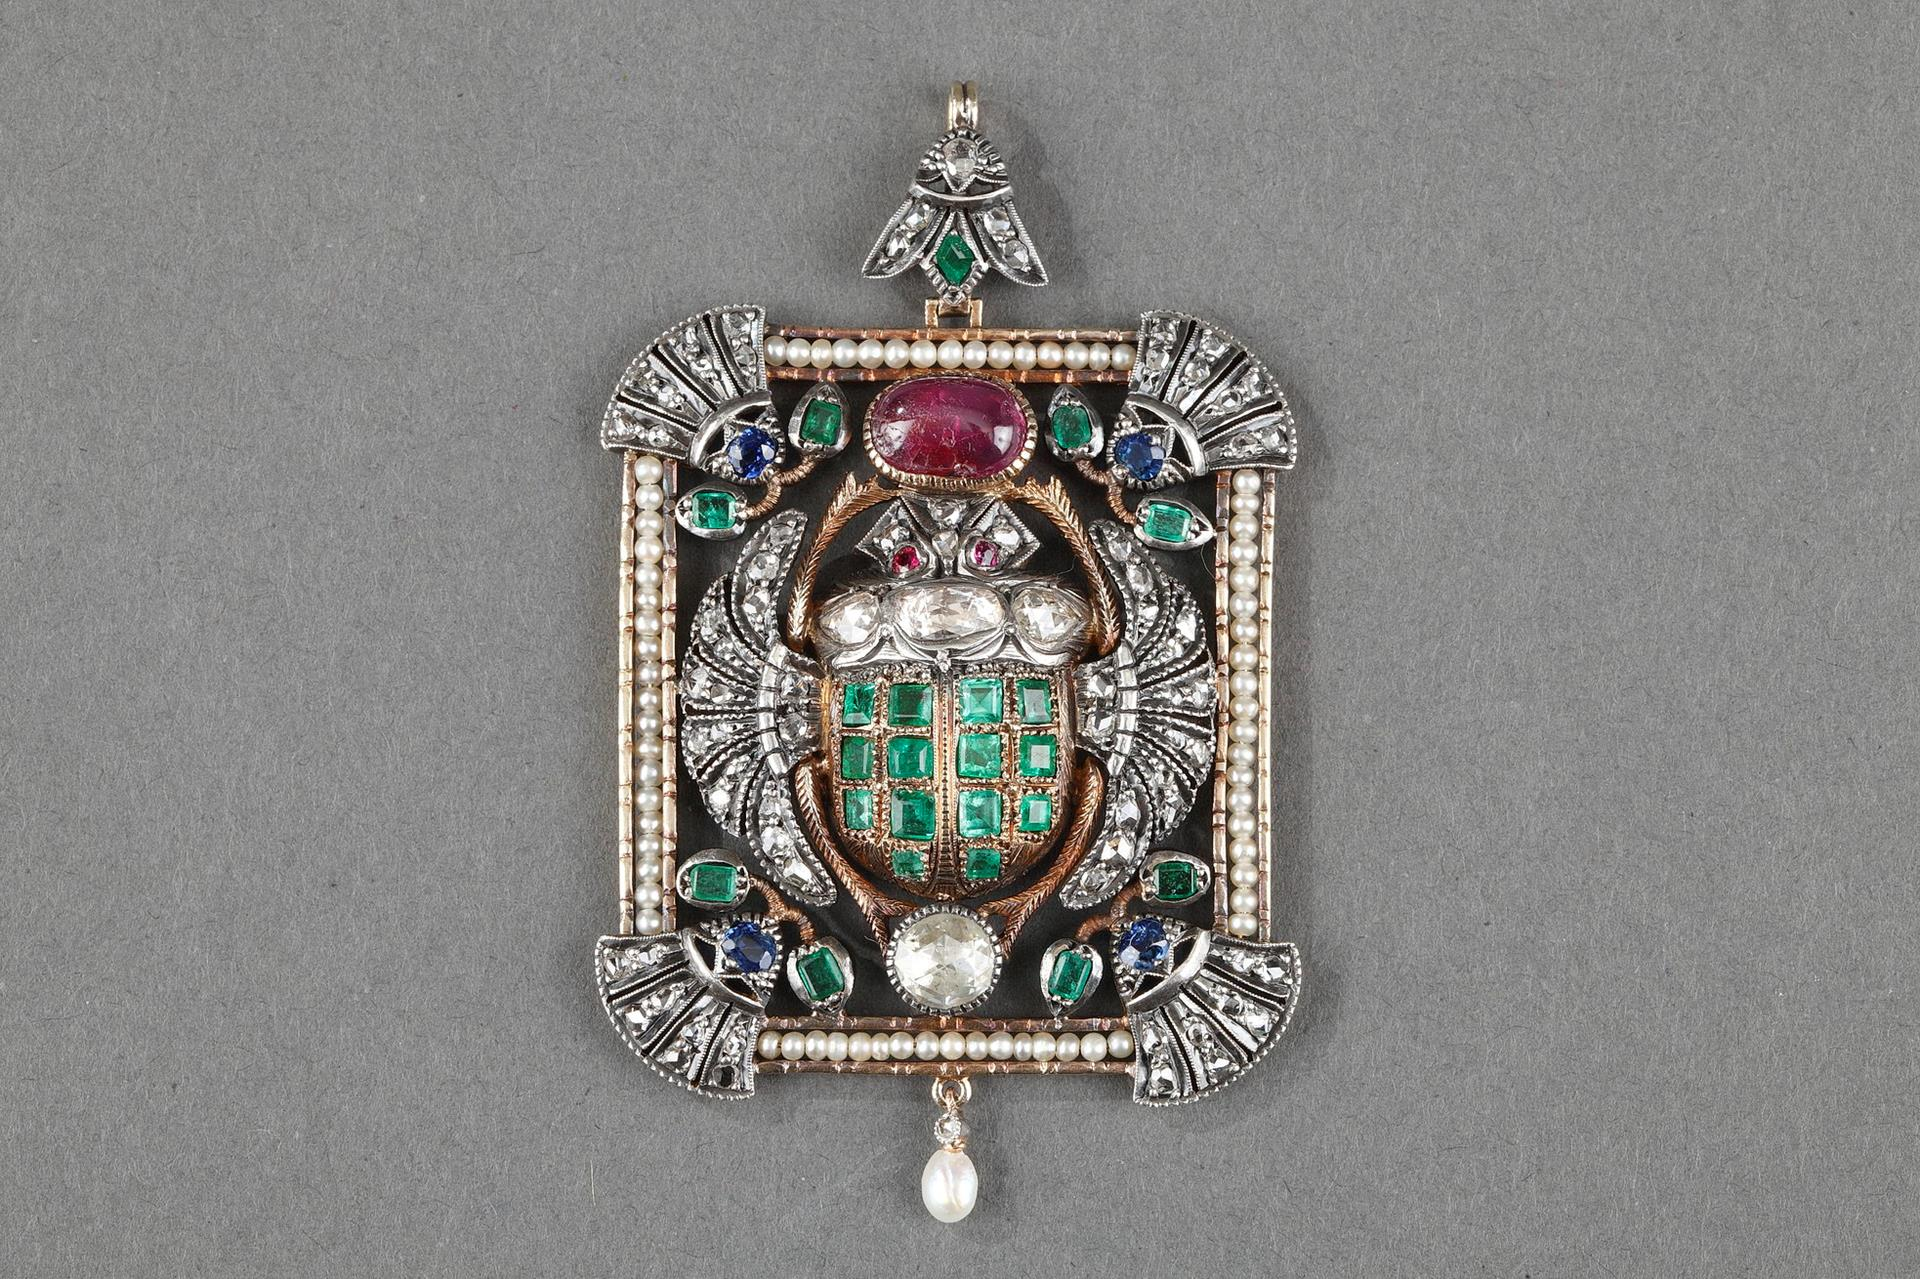 Pendant with Scarab beetle gold mounted. Art Deco period 1920-1930.